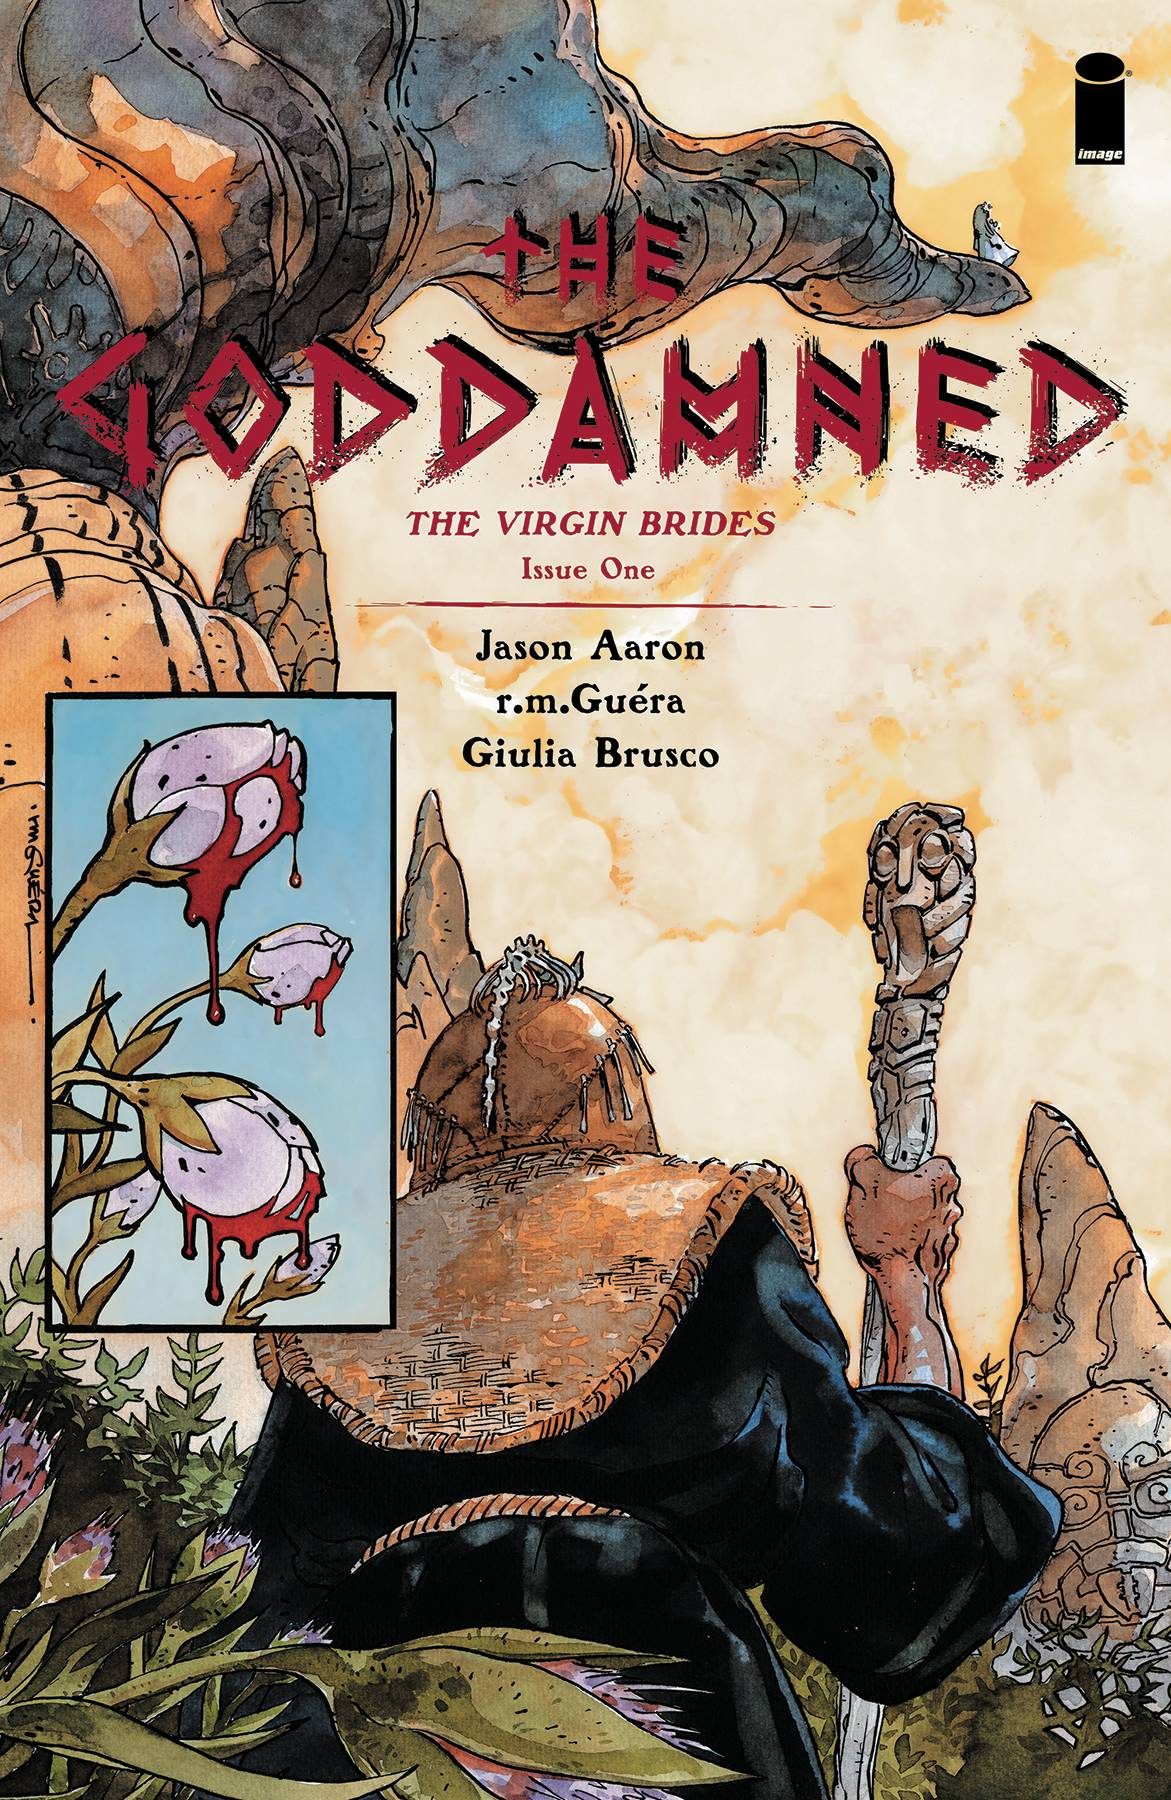 GODDAMNED VIRGIN BRIDES #1 (OF 5) (MR)